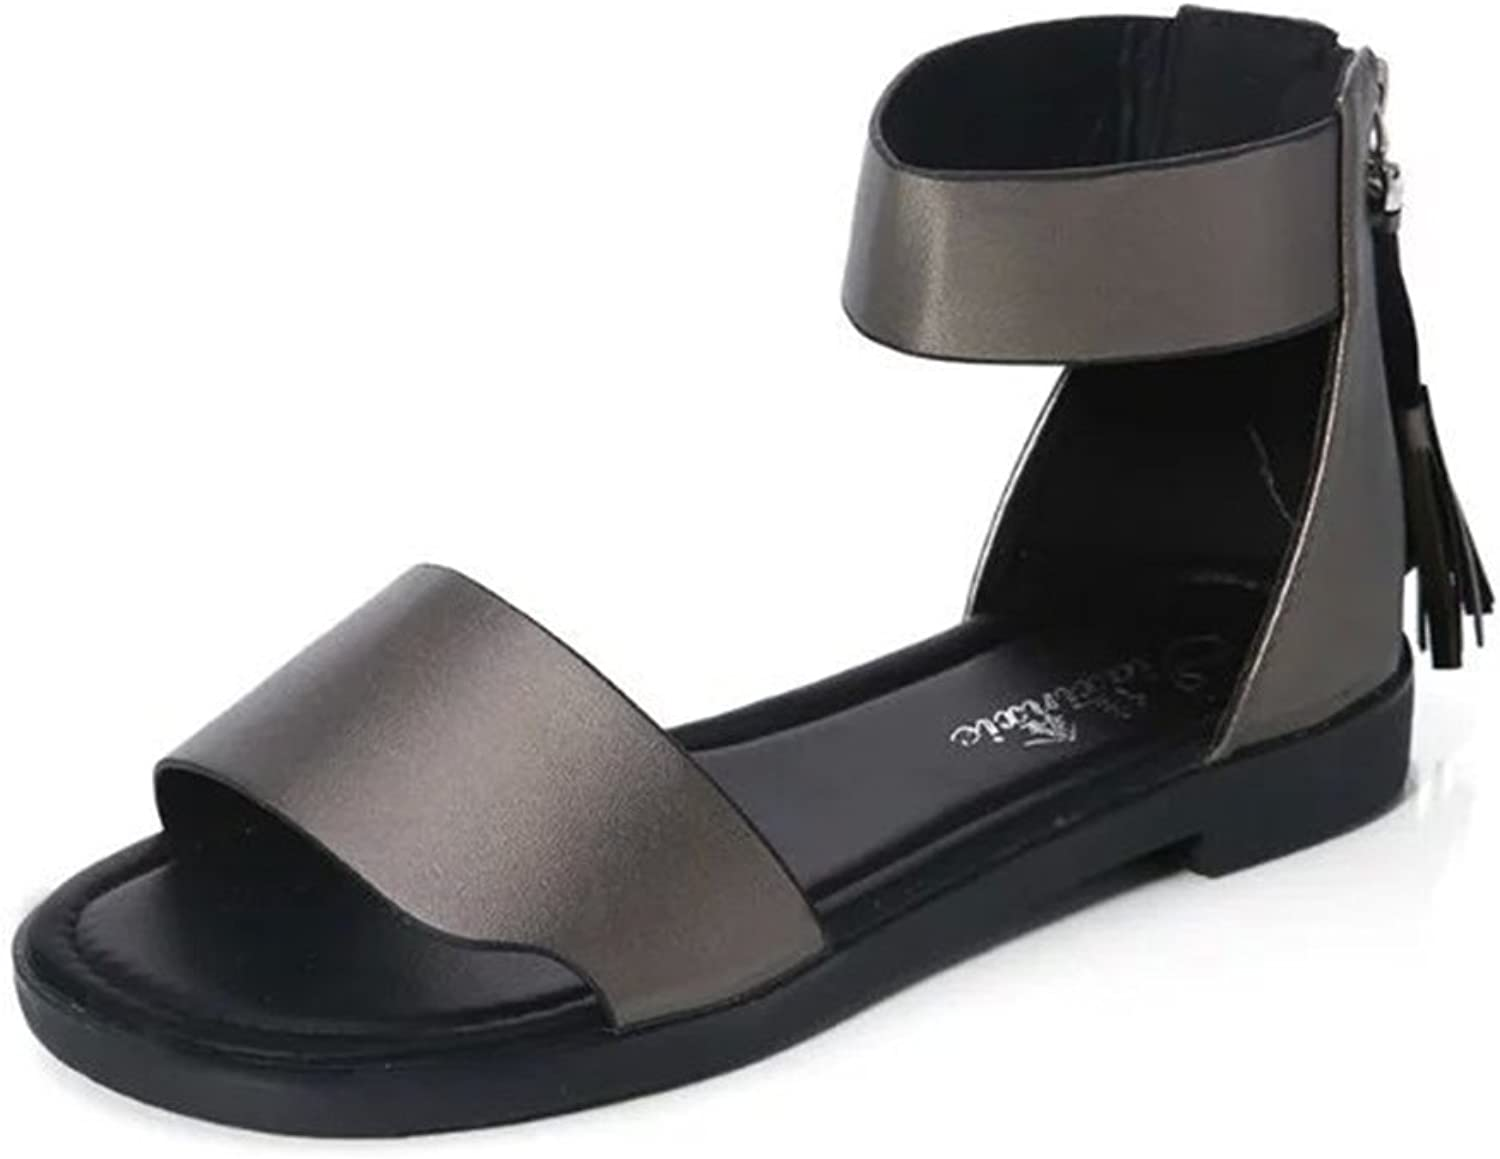 SUNNY Store Women's Ankle Strap Gladiator Flat Sandals